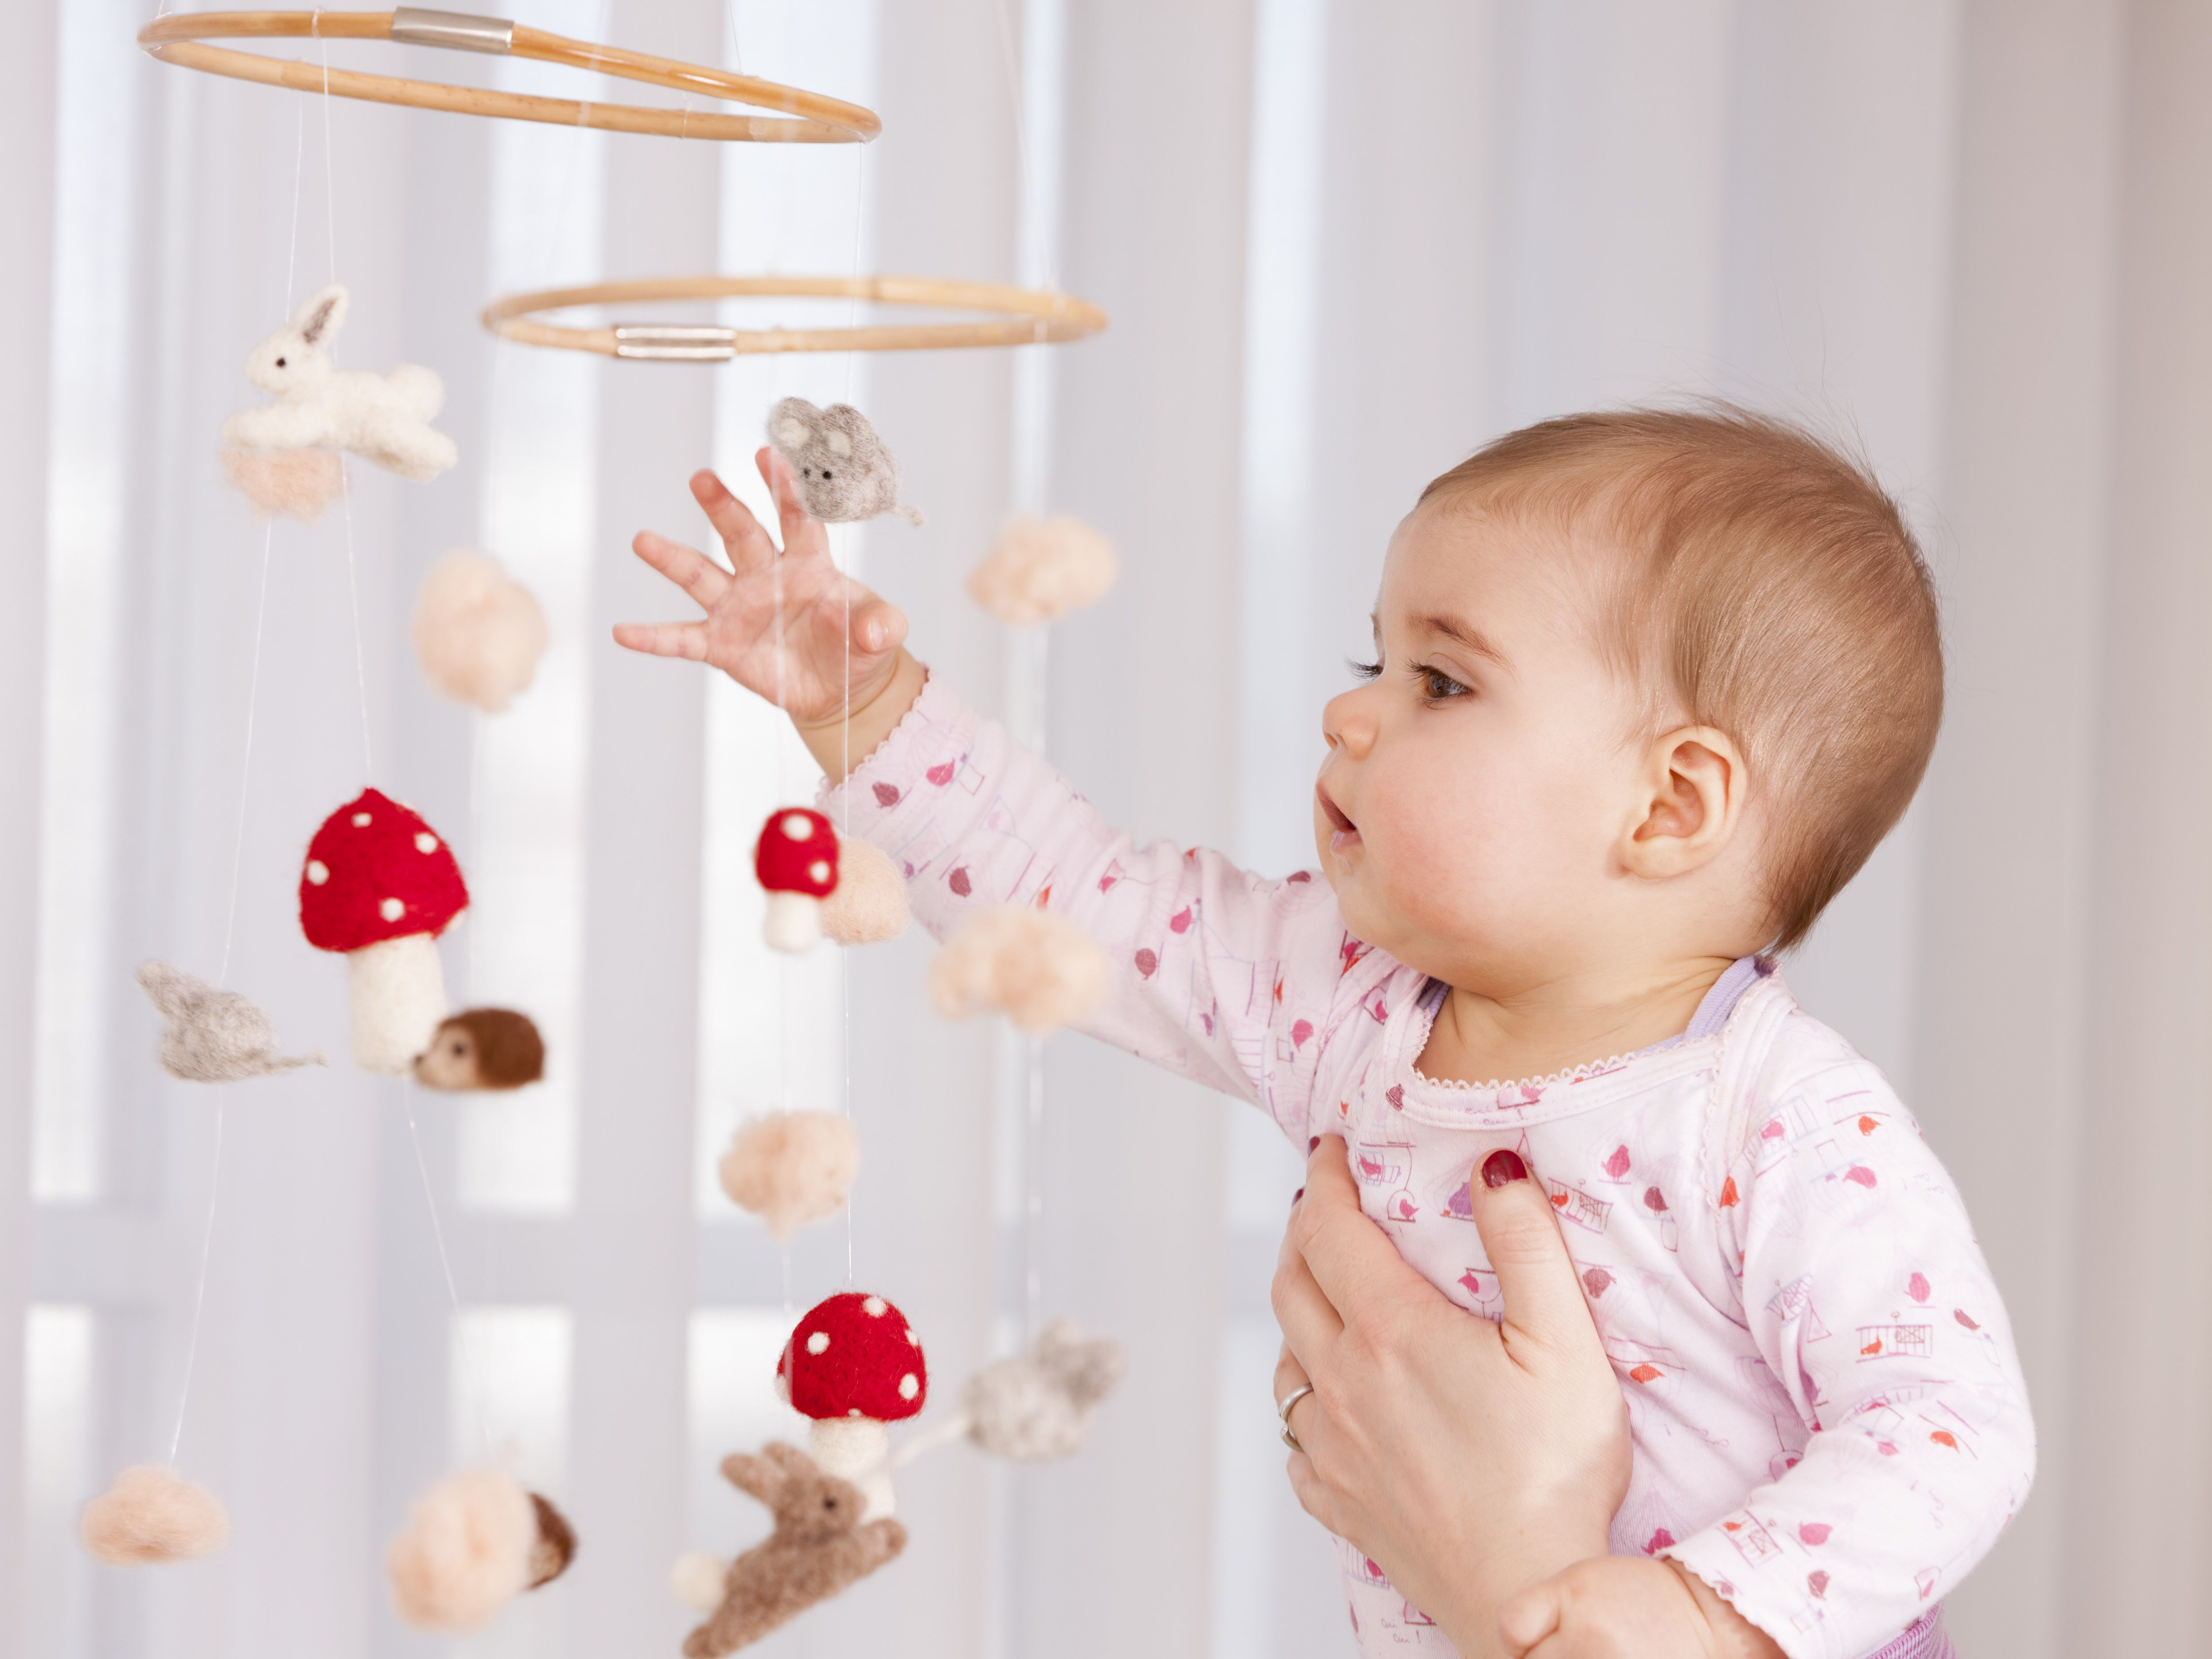 5 Important Safety Tips For Baby Mobiles